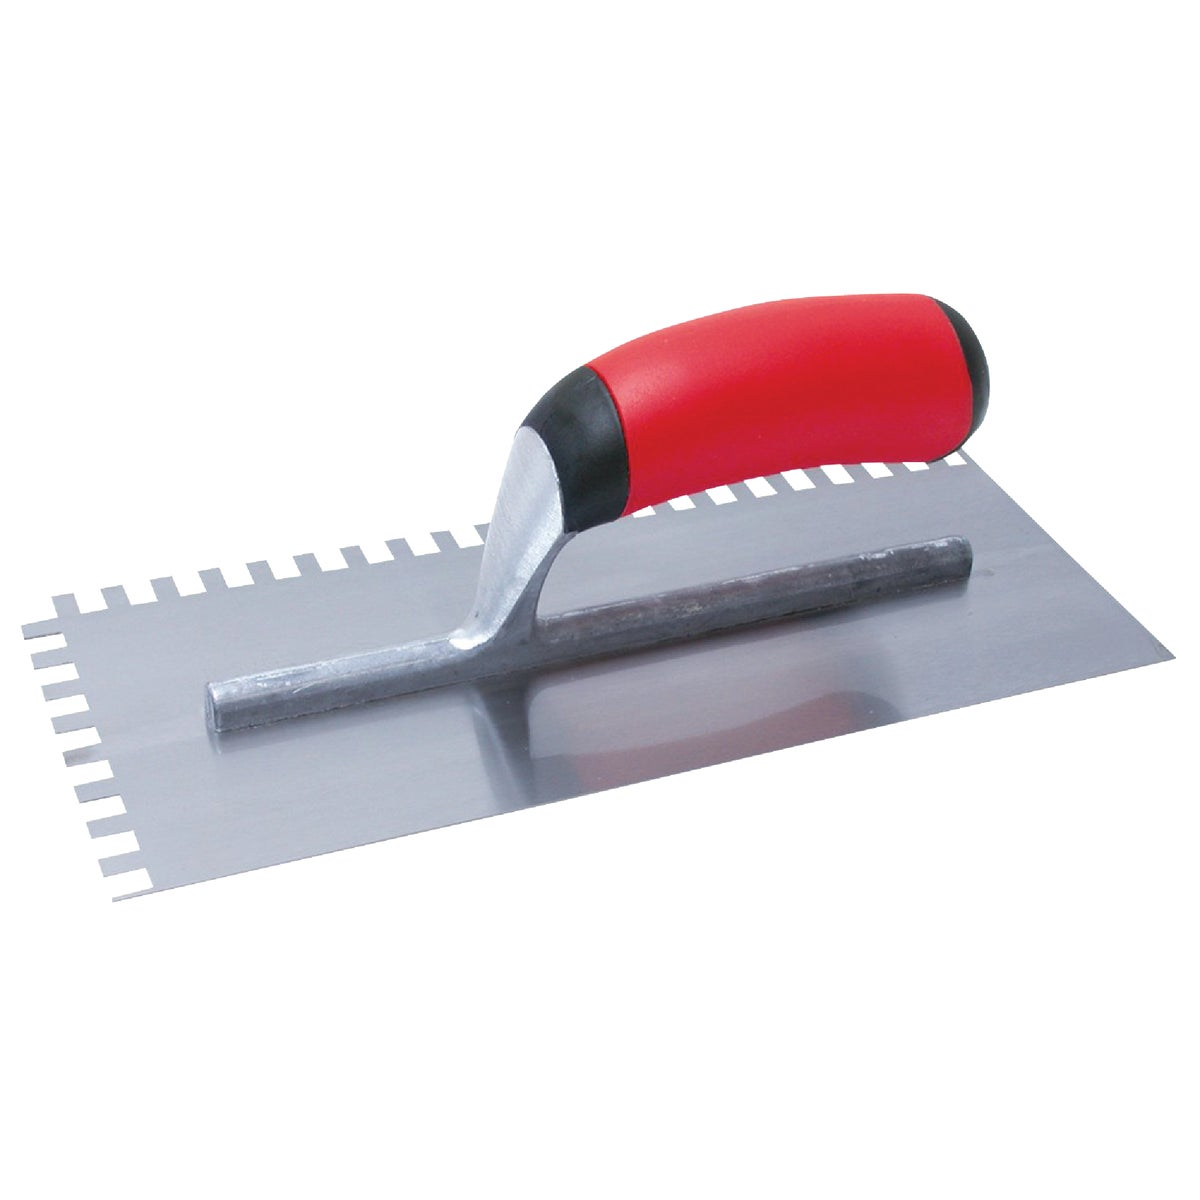 1/4X1/4 NOTCHED TROWEL - 15671 by Marshalltown Trowel